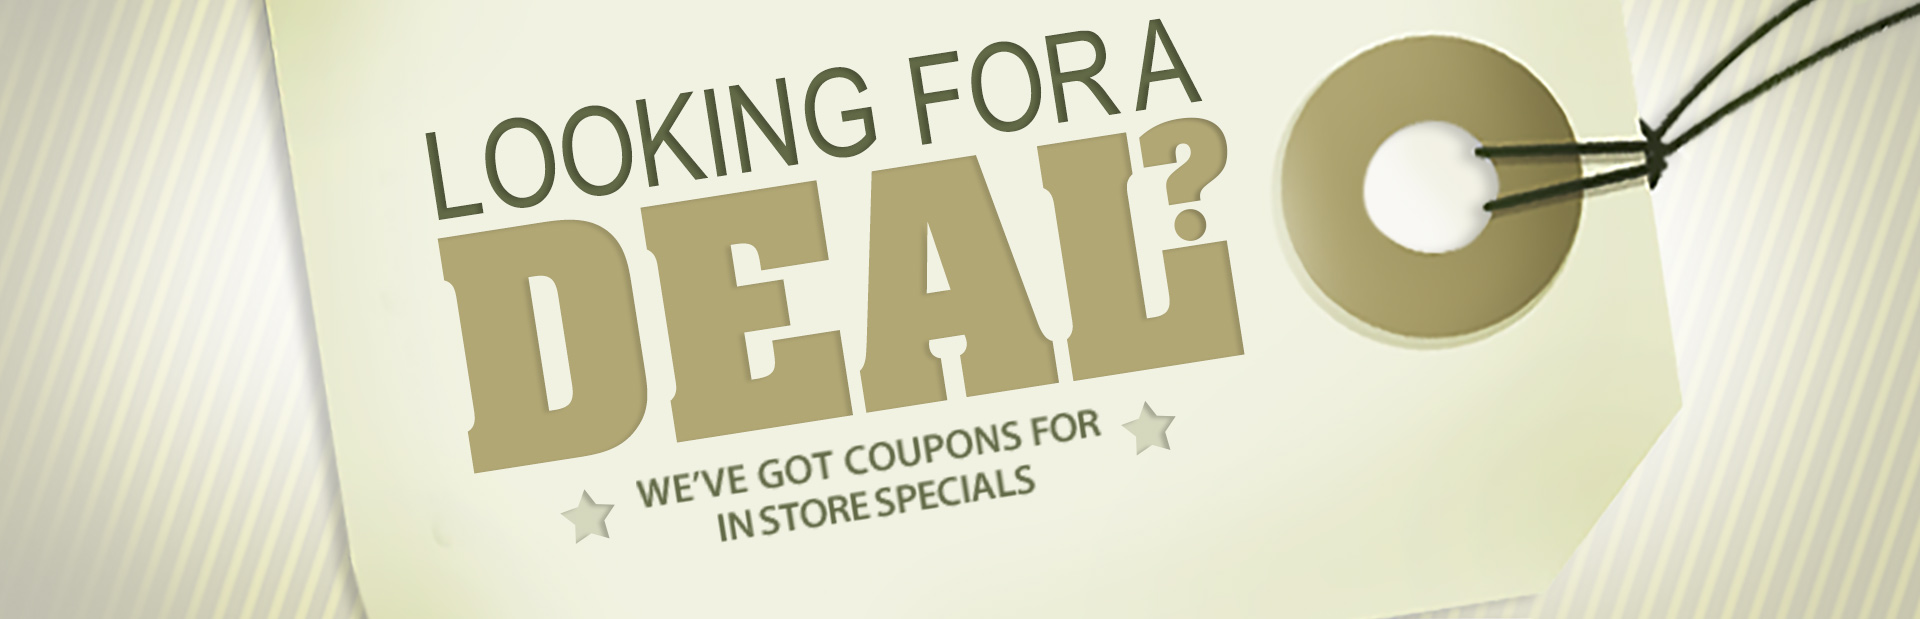 Looking for a great deal? Click here to print coupons and save!